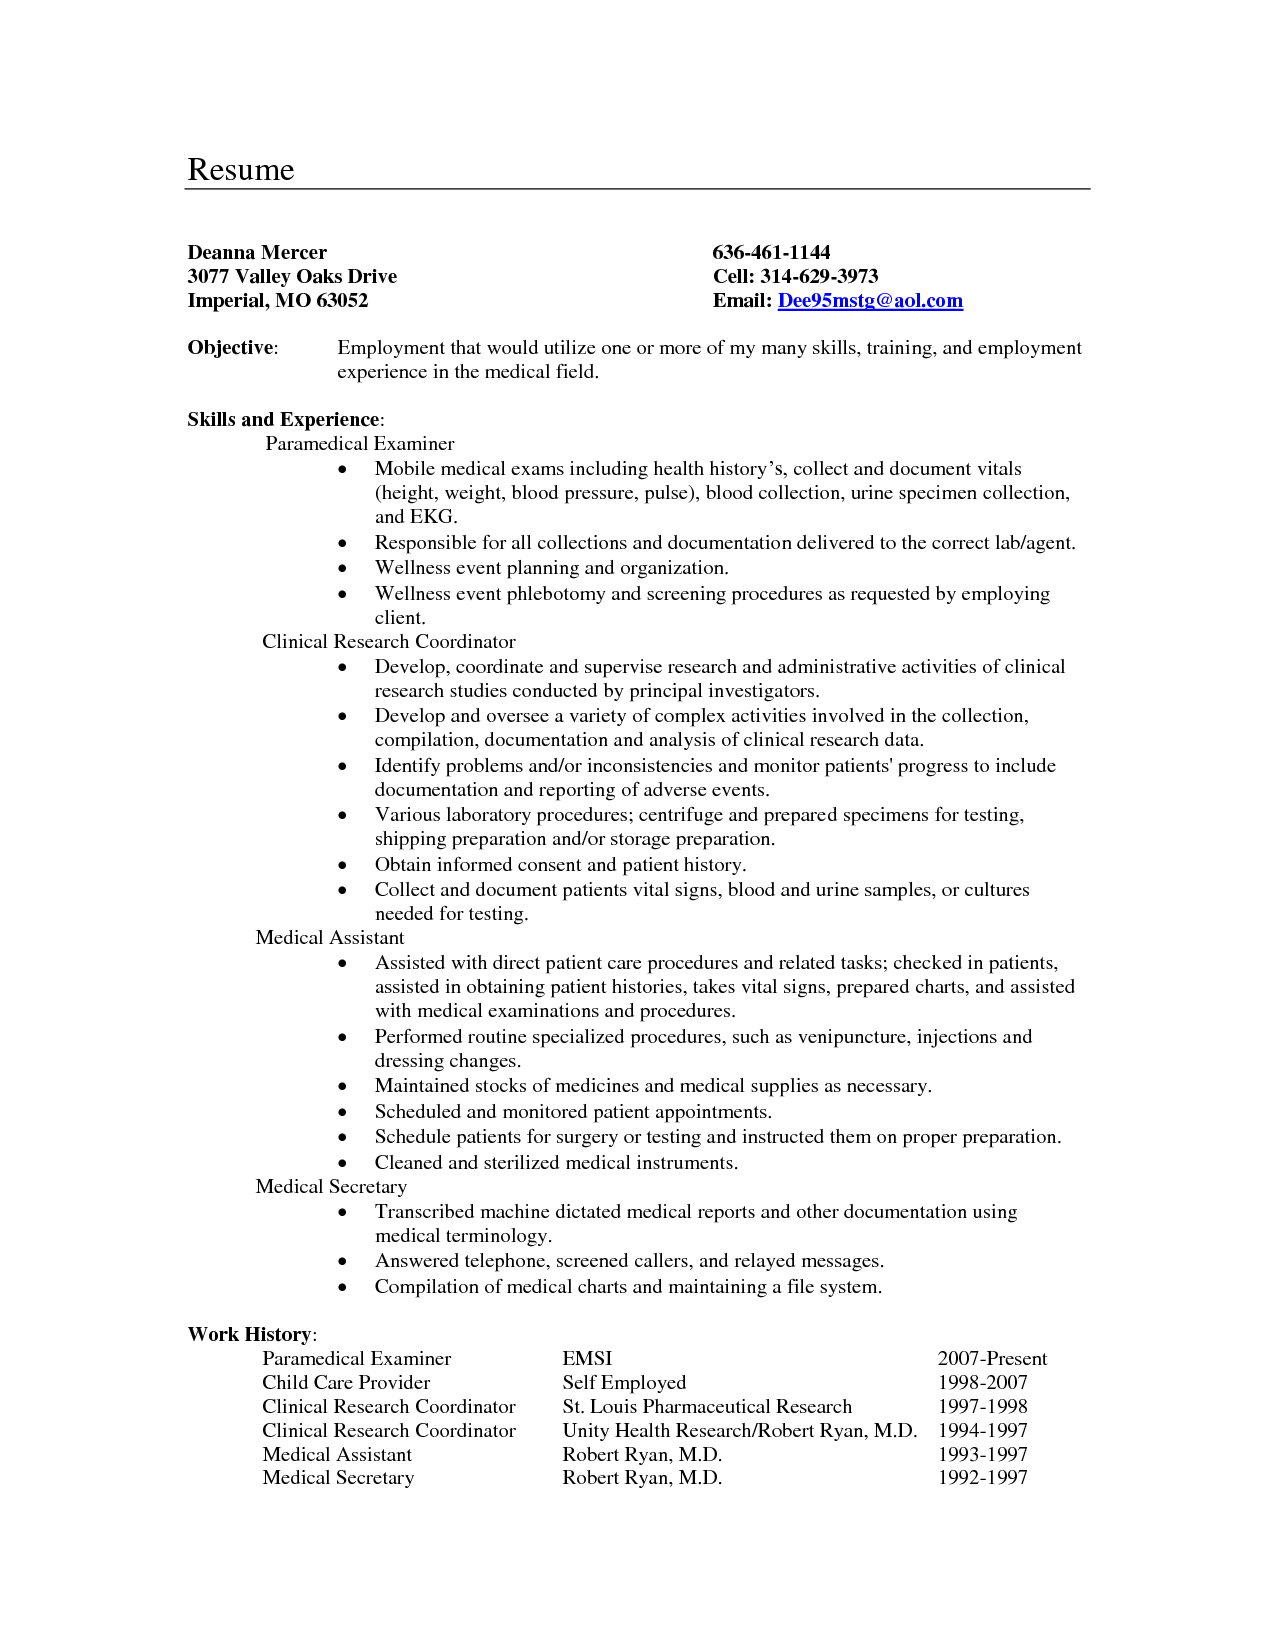 medical secretary resume objective examples resumes pinterest